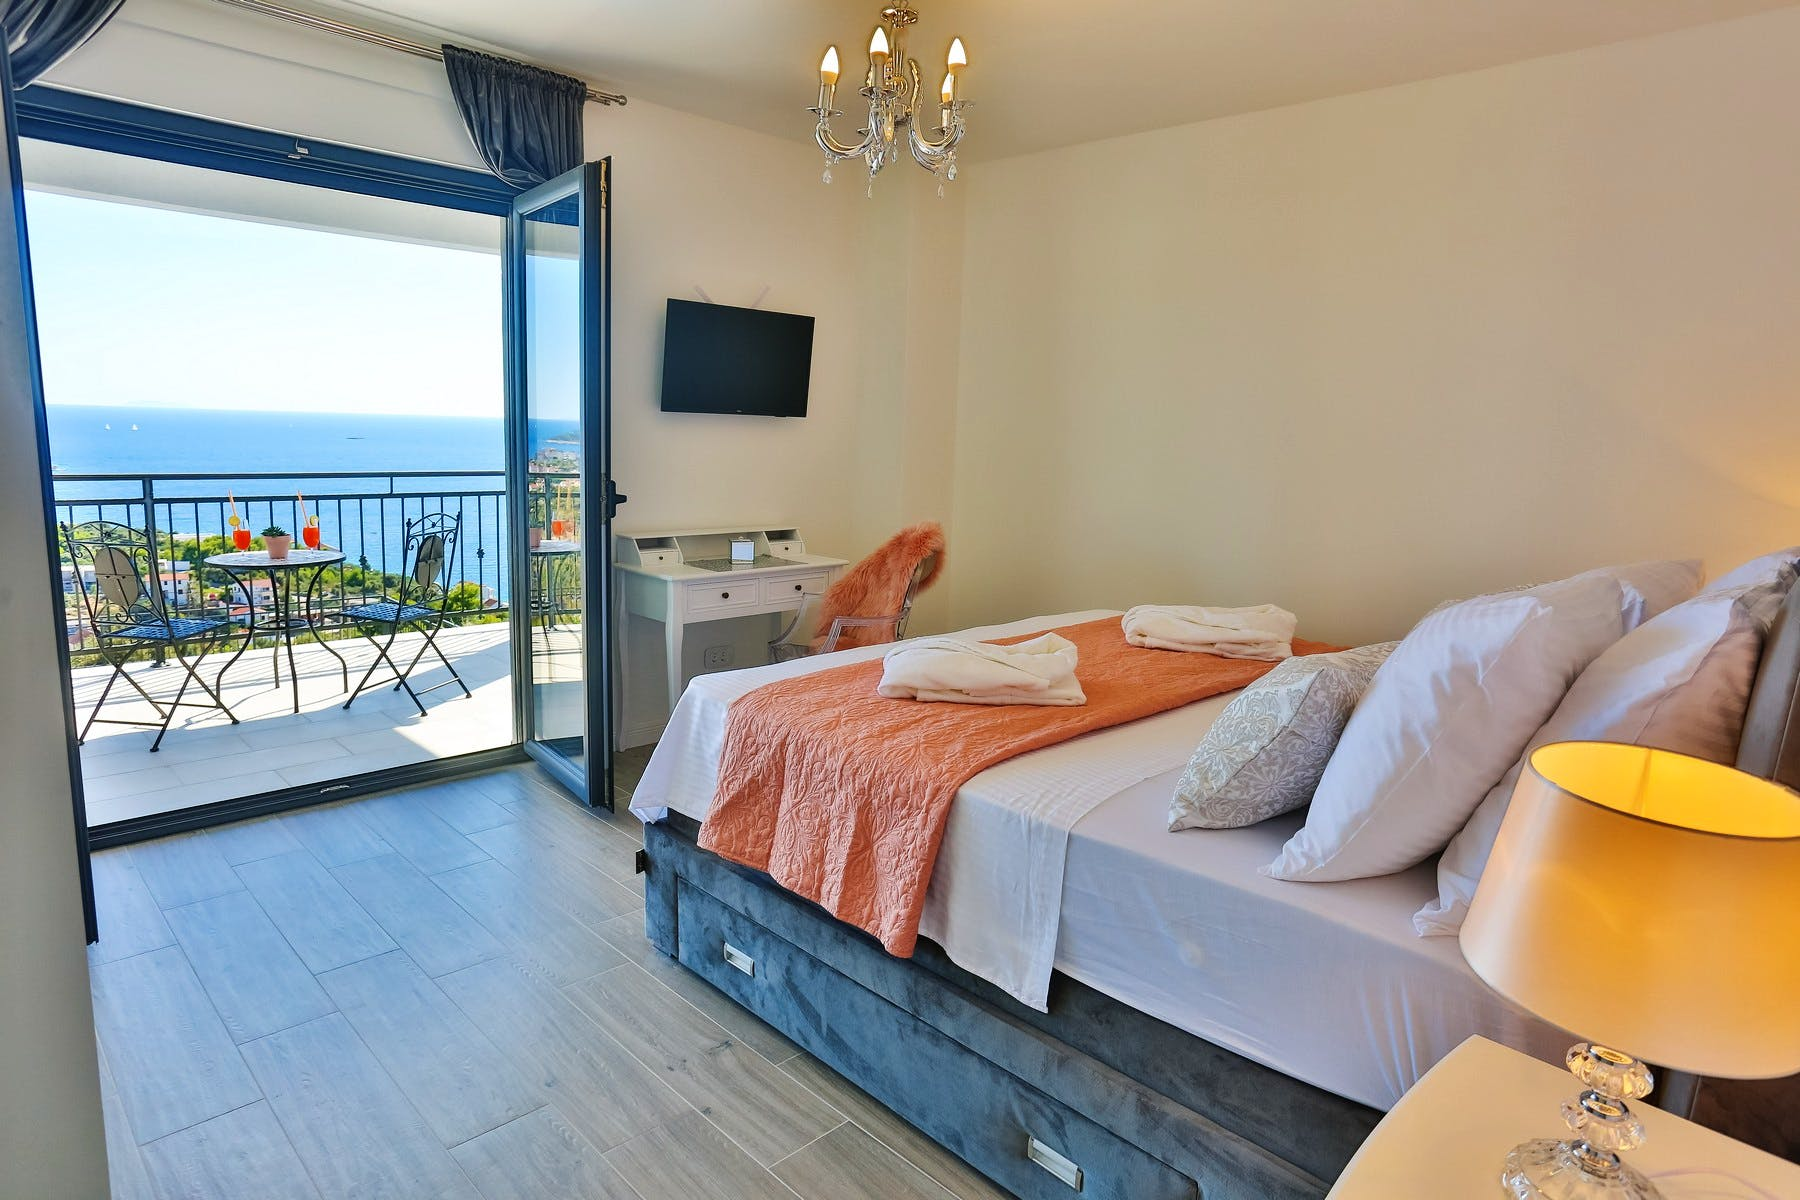 Modern bedroom with a sea view from the balcony